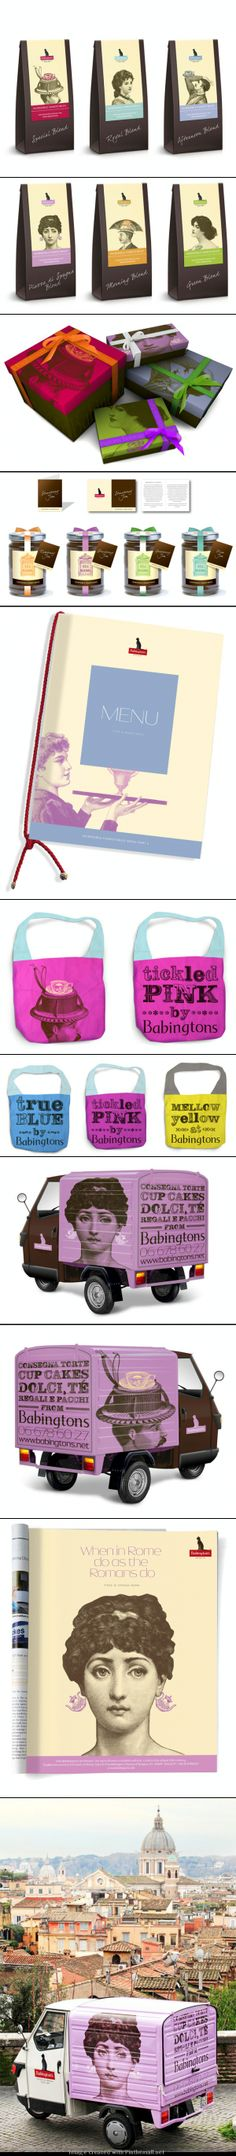 Who wants some tea now #identity #packaging #branding PD - created via http://www.packagingoftheworld.com/2011/11/babingtons-english-tea-rooms.html